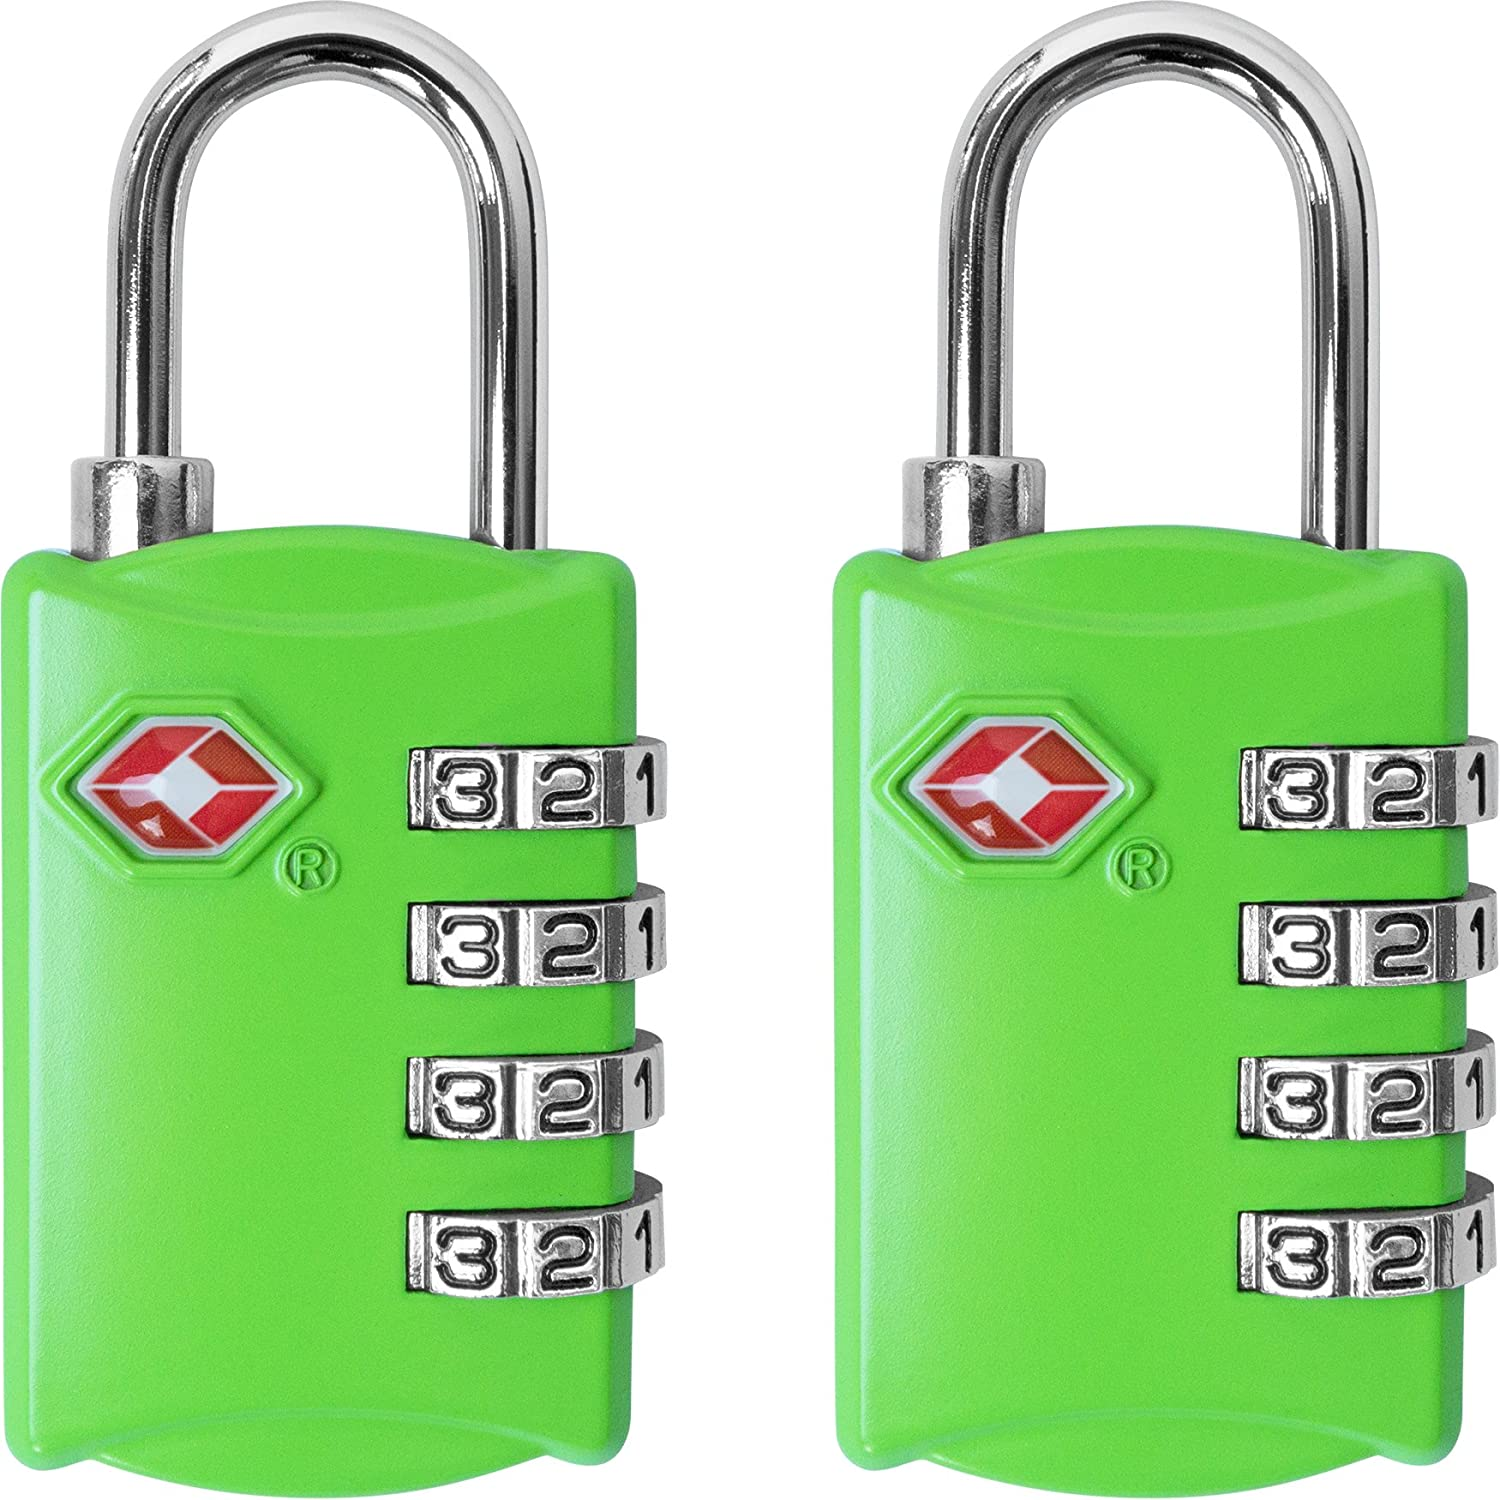 36804441ba81 TSA Luggage Locks (2 Pack) - 4 Digit Combination Steel Padlocks - Approved  Travel Lock for Suitcases & Baggage - Green